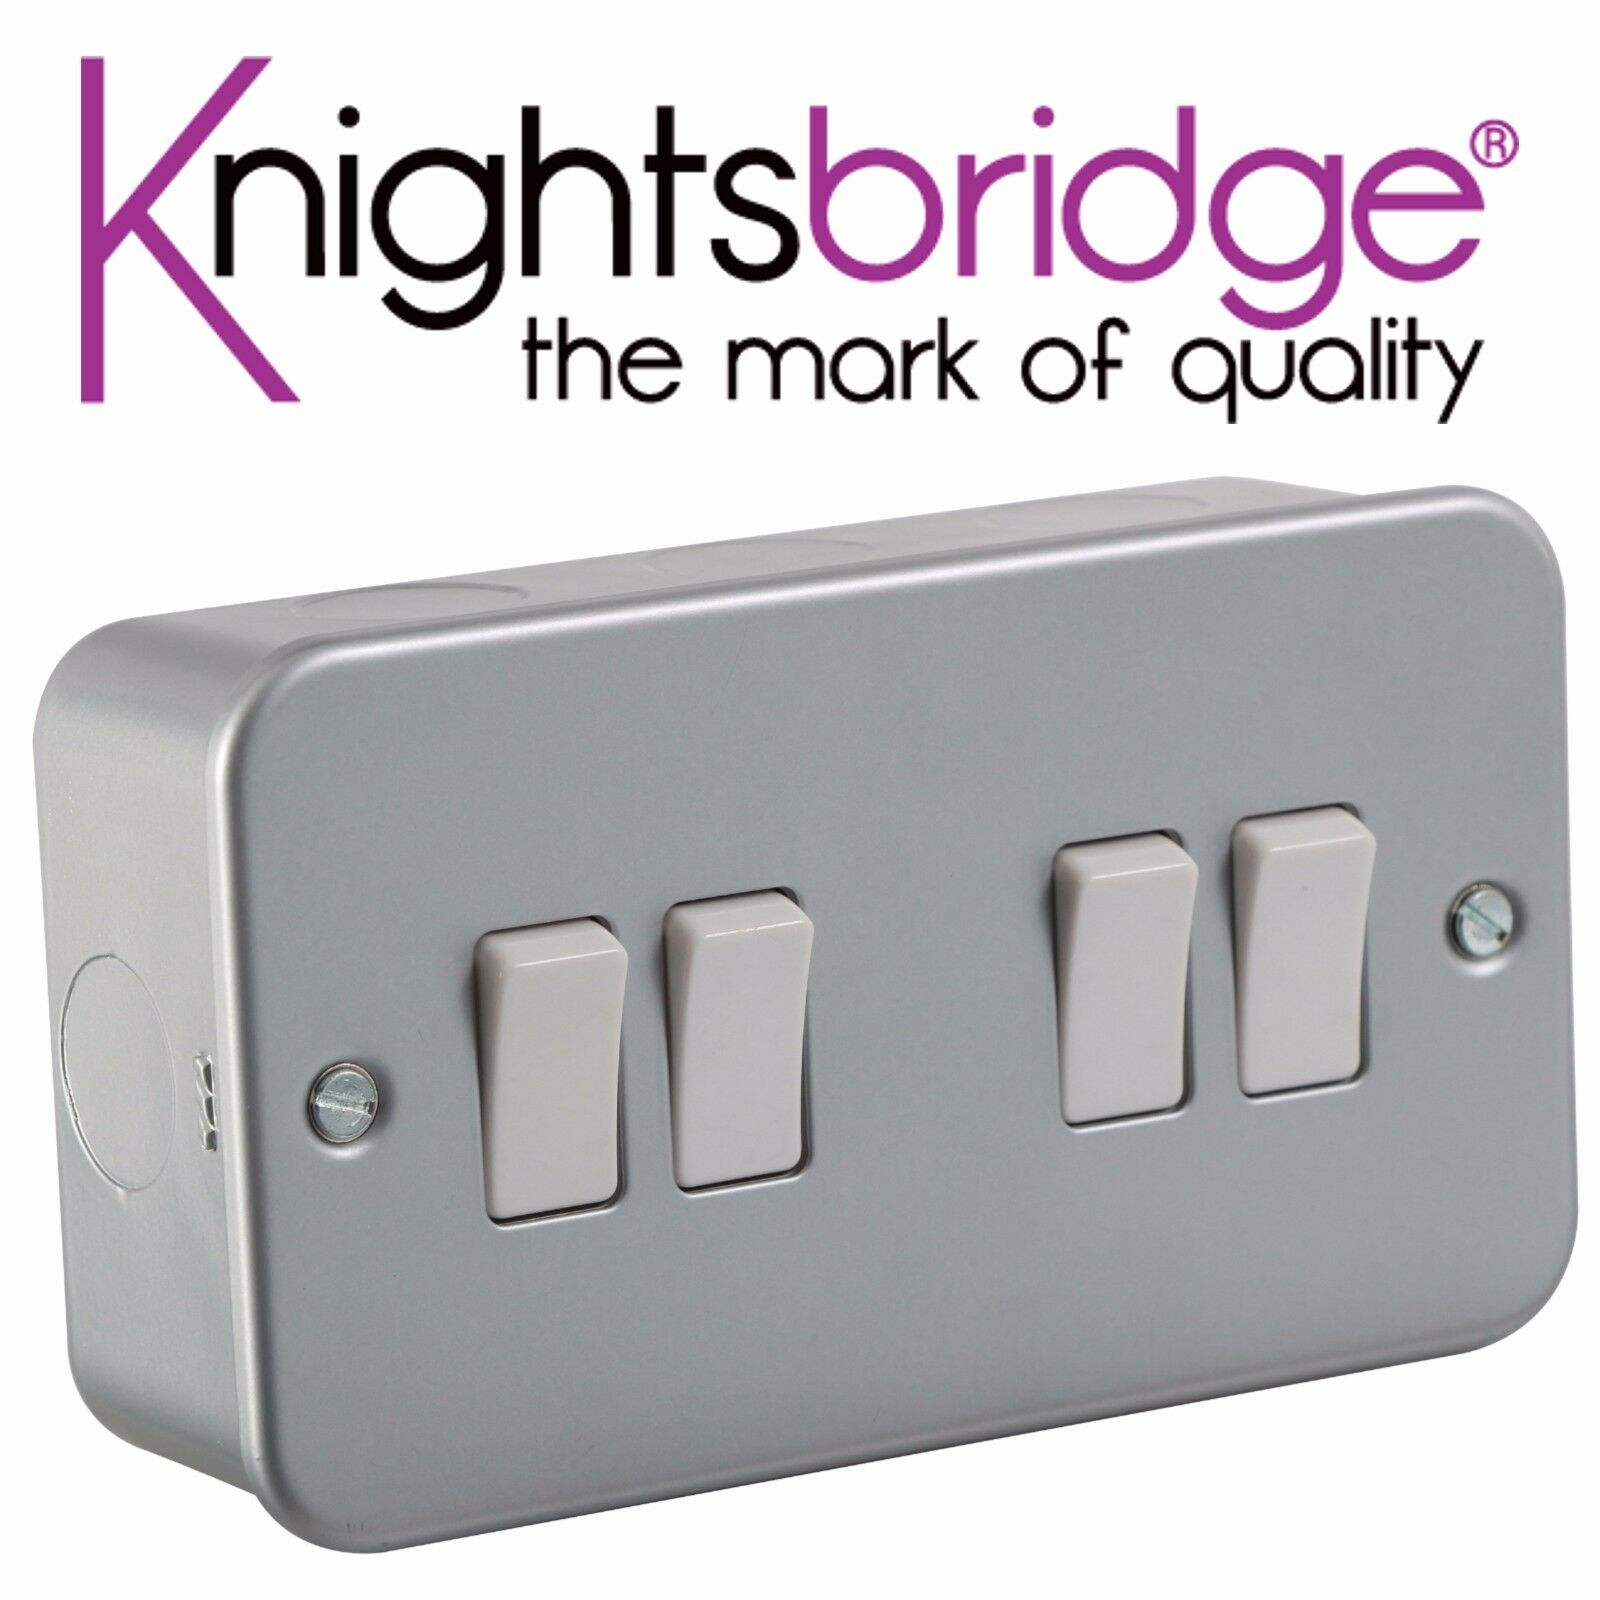 Knightsbridge Metal Clad Metalclad 10a 10 Amp 4 Gang 2 Way Quad Light Switch Uk 1 Of 1free Shipping See More